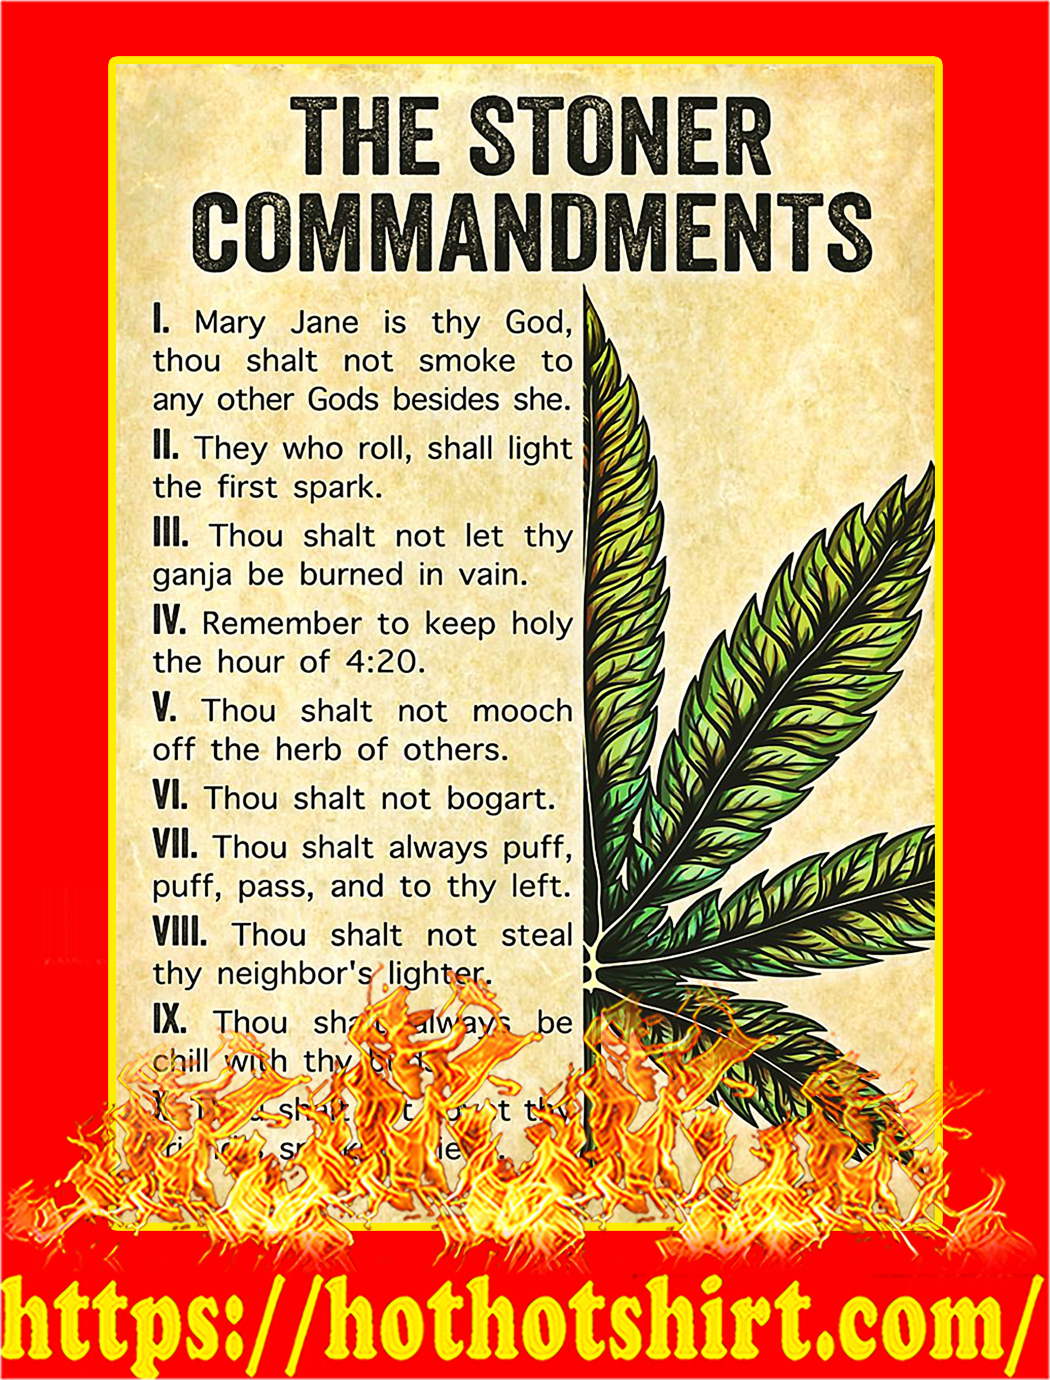 Weed cannabis the stoner commandments poster - A2